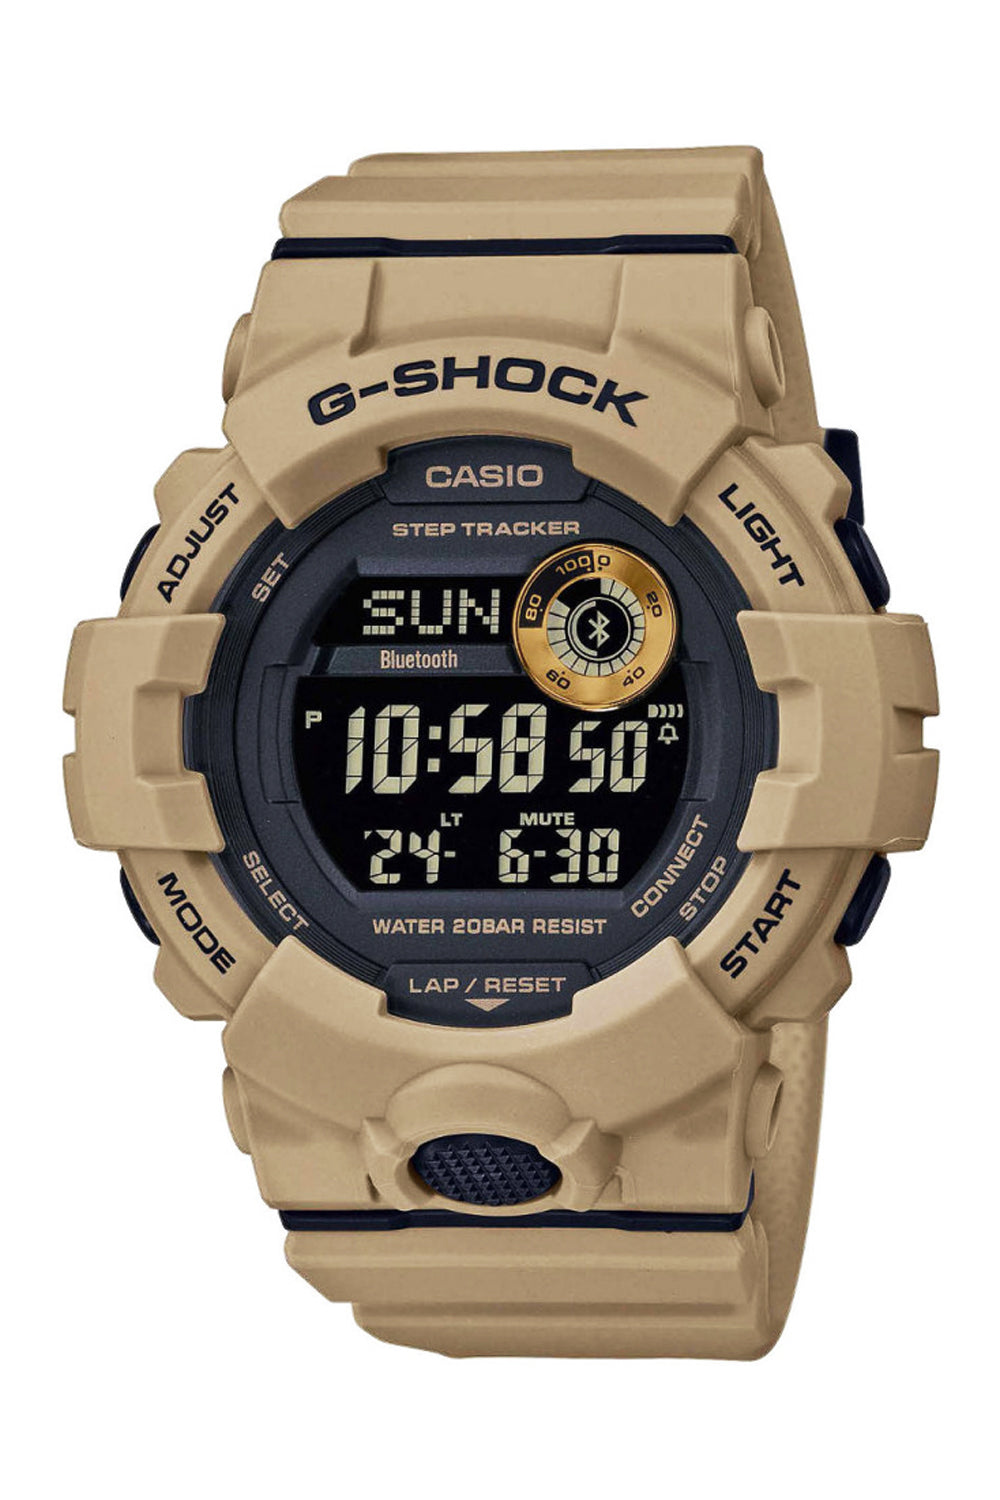 CASIO GBD-800UC-5ER G-Shock Step Tracker digikello